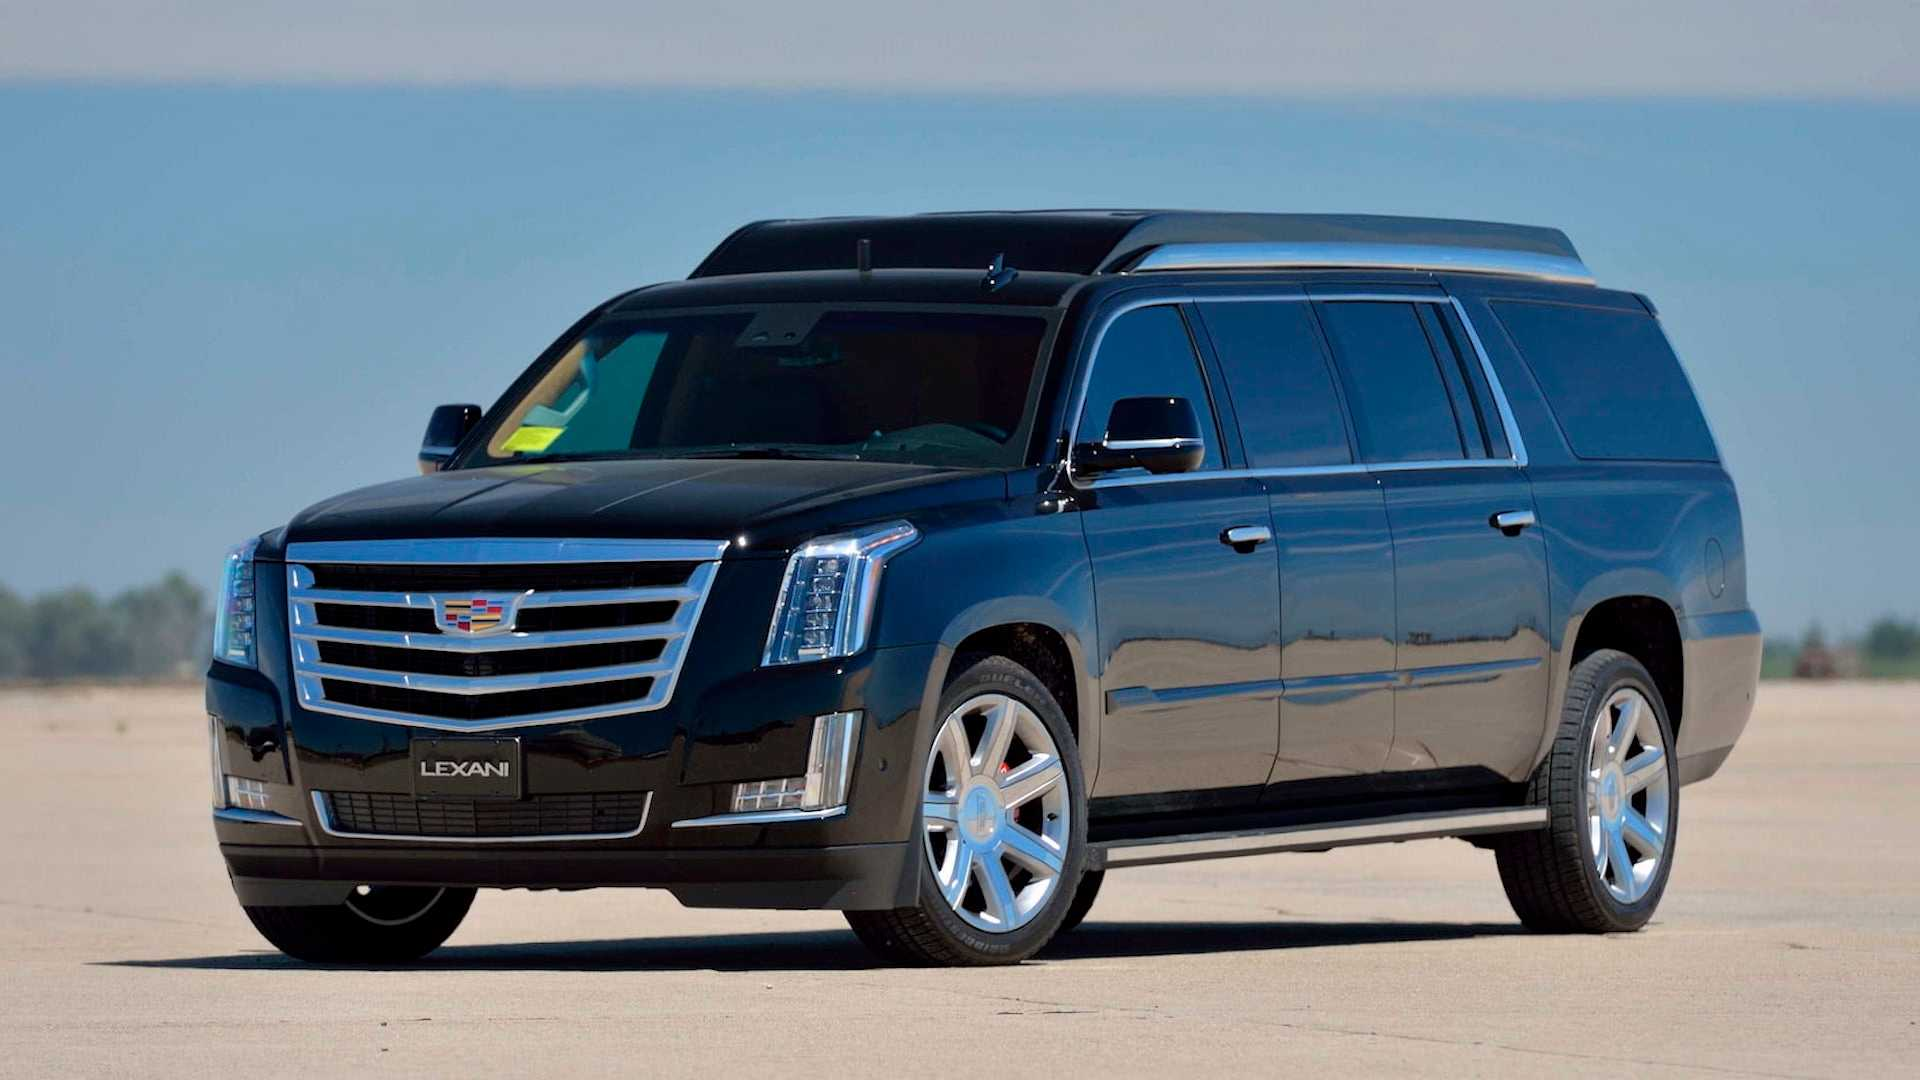 Stretched Cadillac Escalade Is An Opulent Limo Suv You Can Own